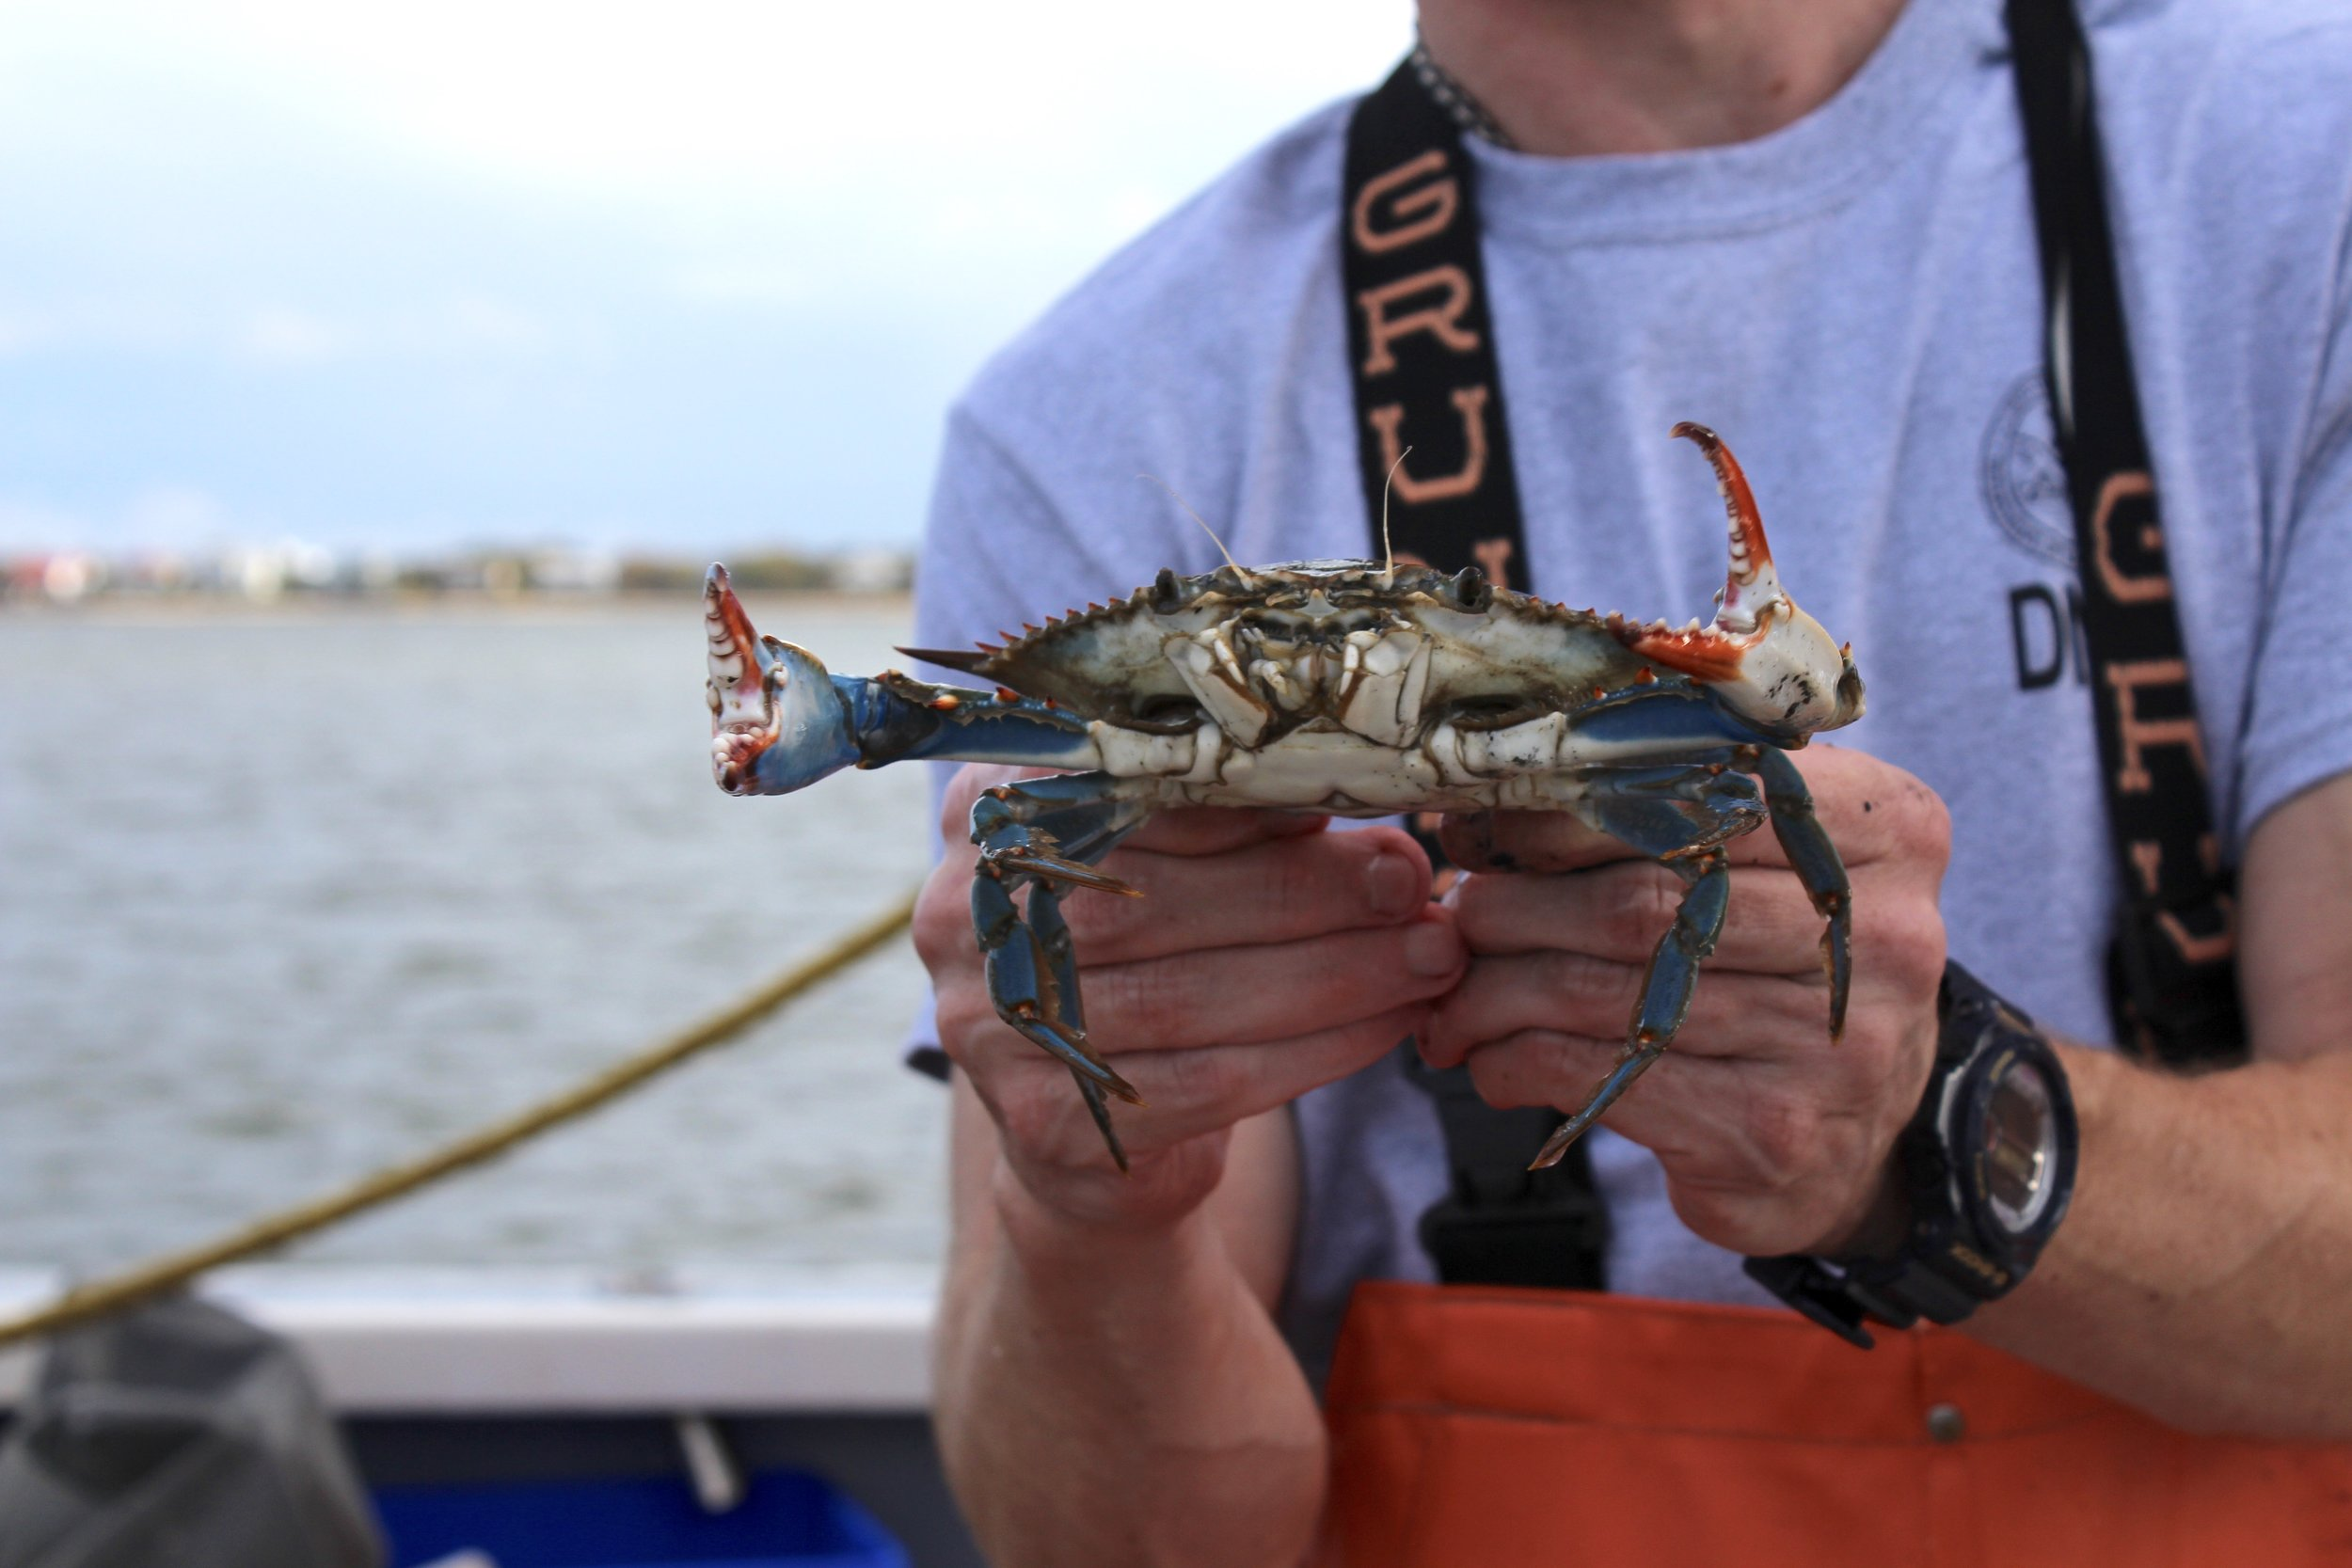 This mature male blue crab, or jimmy, was collected on an SCDNR crustacean trawl. (Photo: E. Weeks/SCDNR)